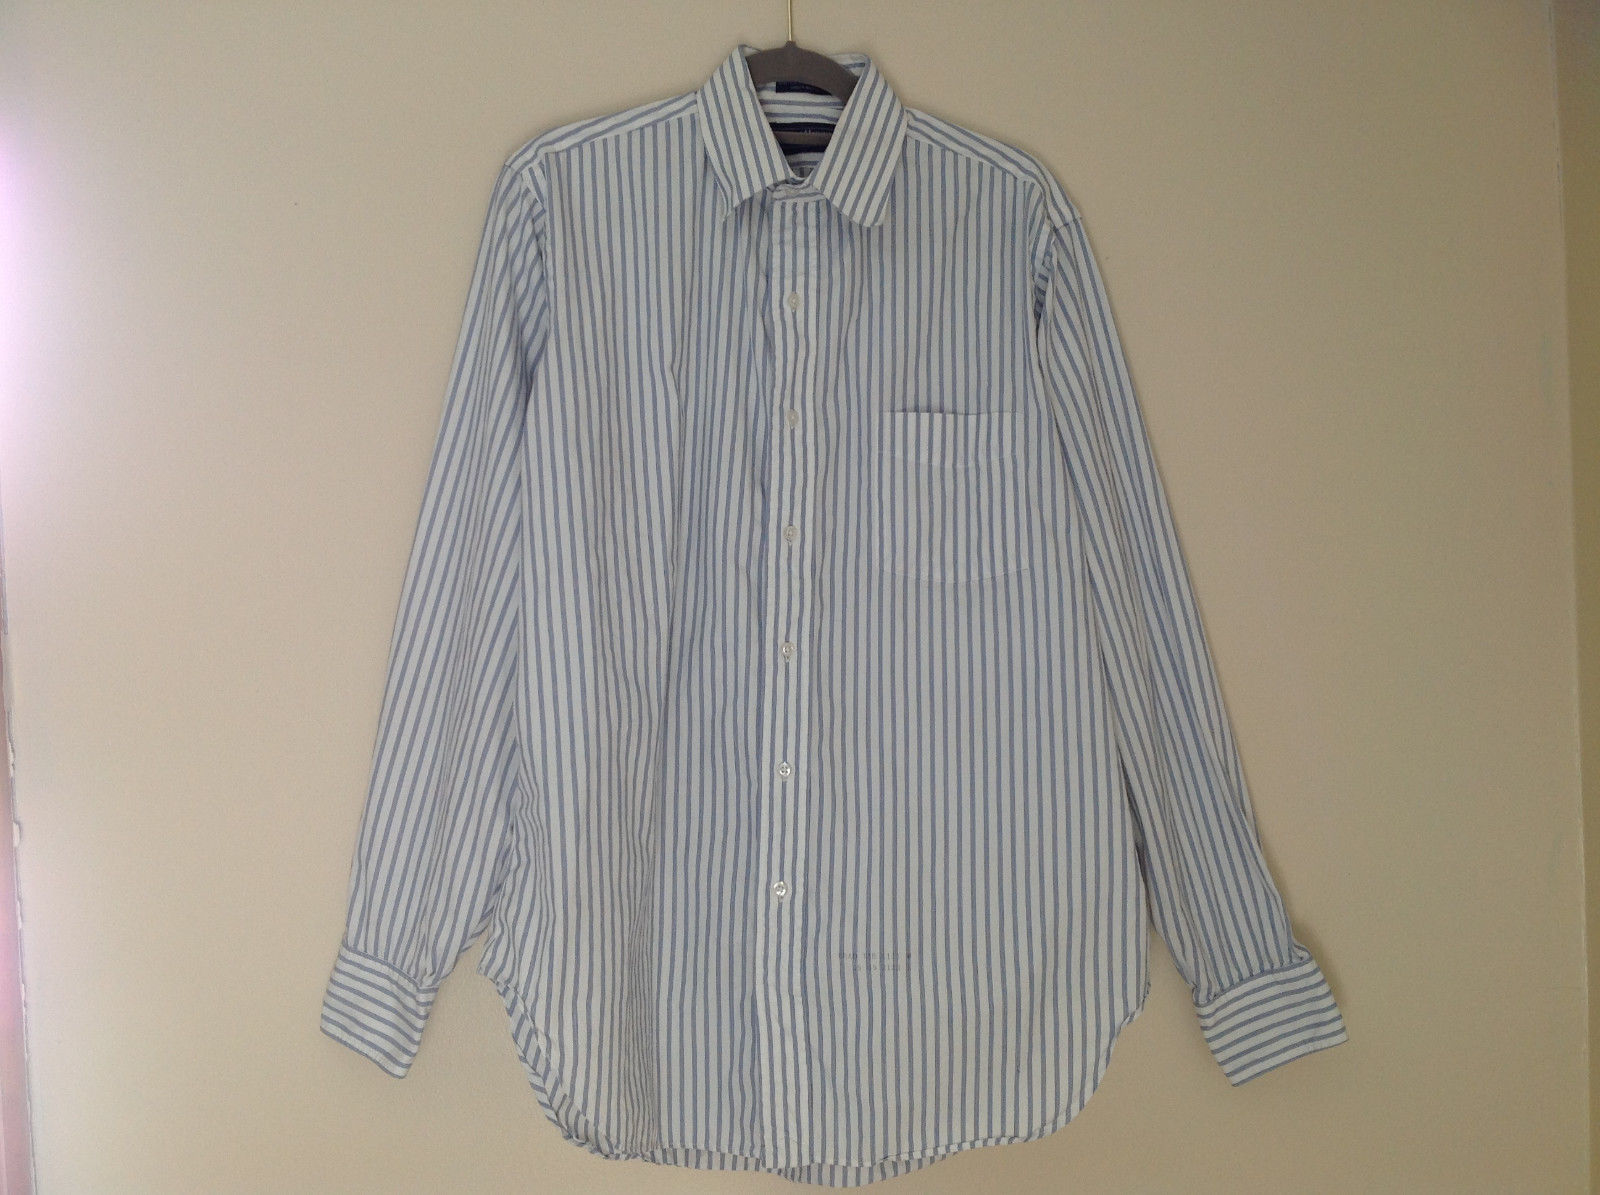 White Blue Striped Button Up Shirt Pocket on Chest Buttons at Cuffs Size 15-5